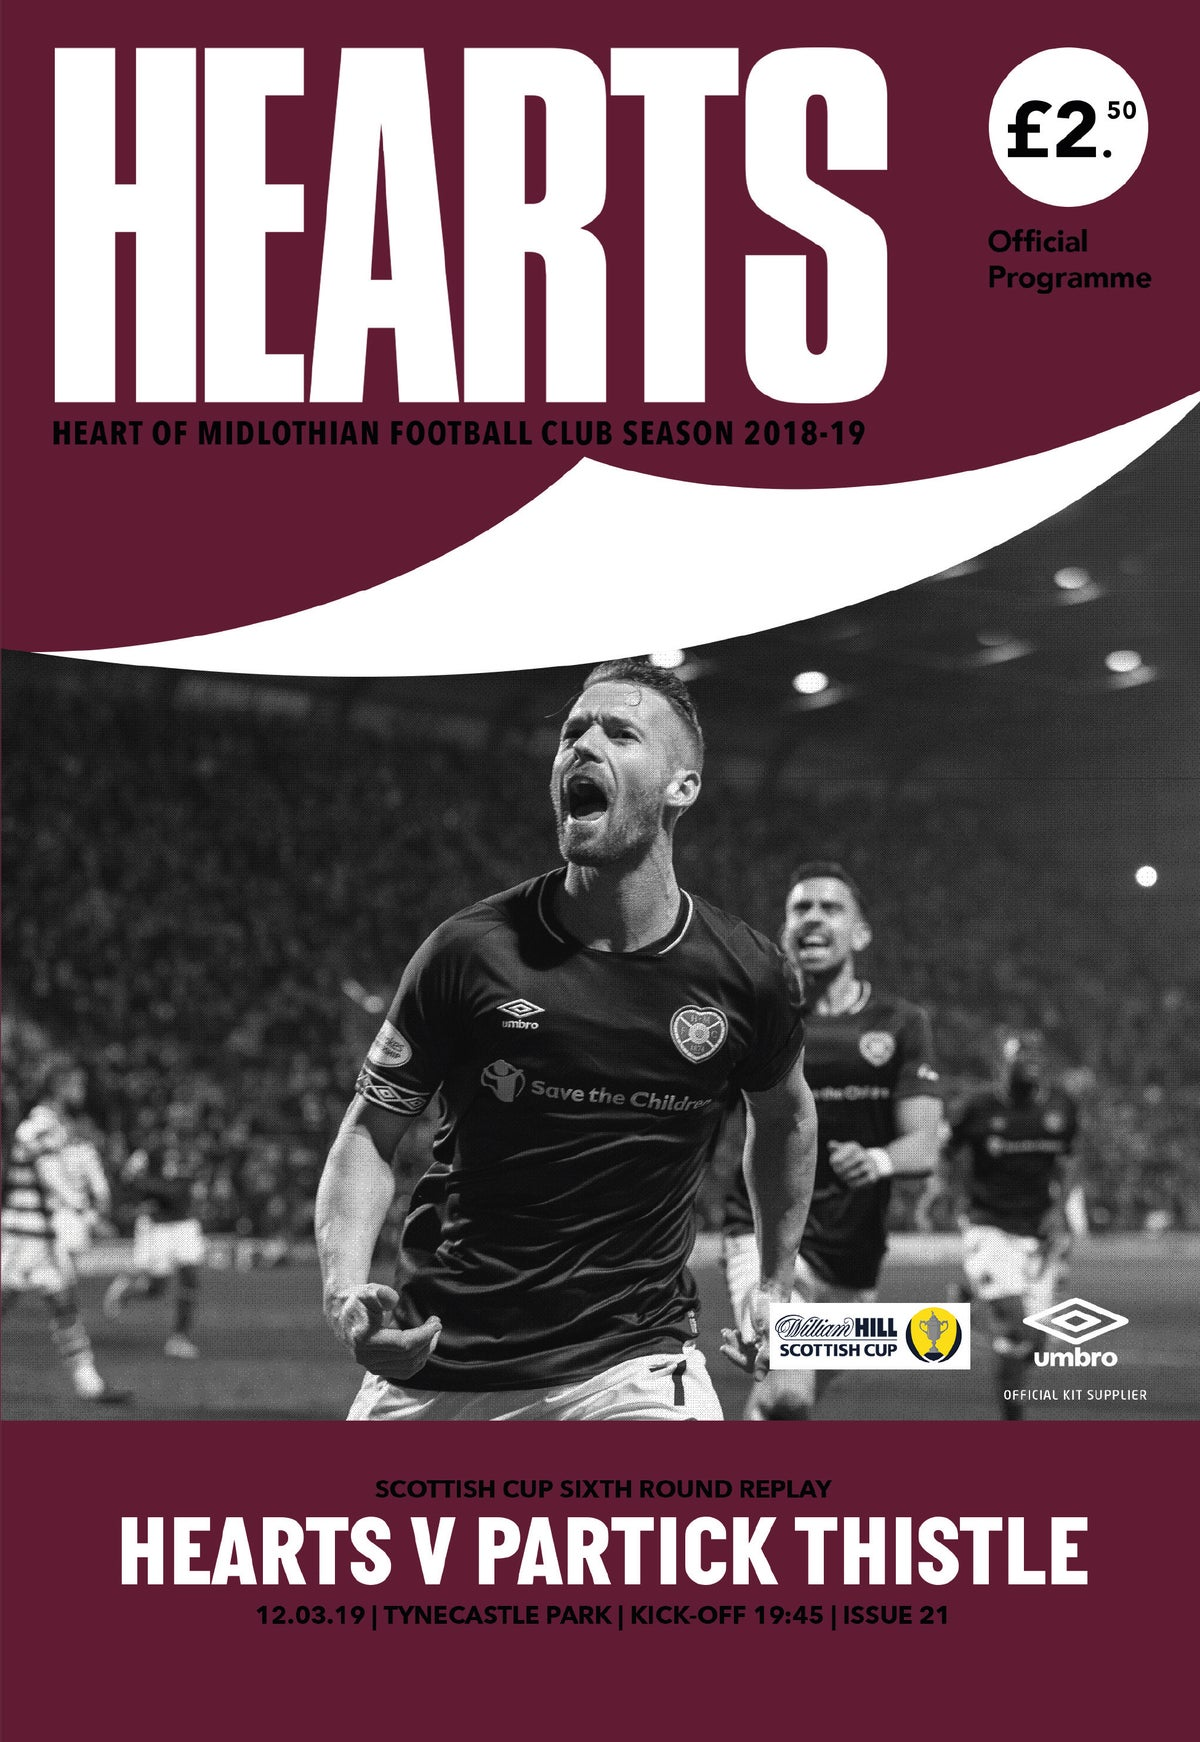 Image of Hearts v Partick Thistle, 12th March 2019